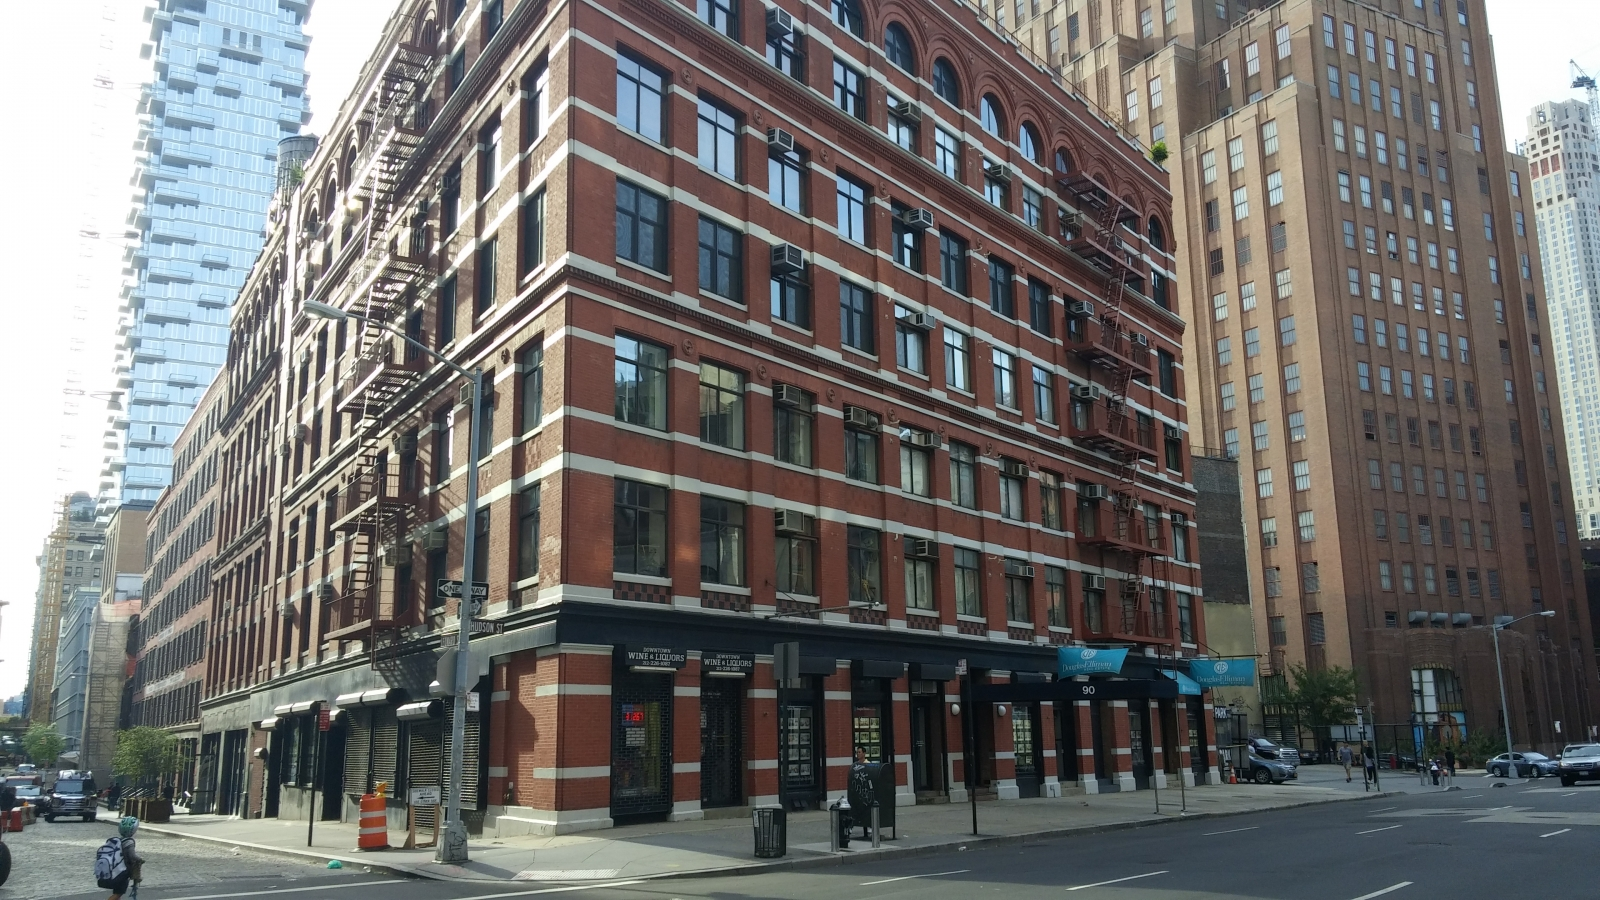 4 Leonard St, New York, NY 10013, USA